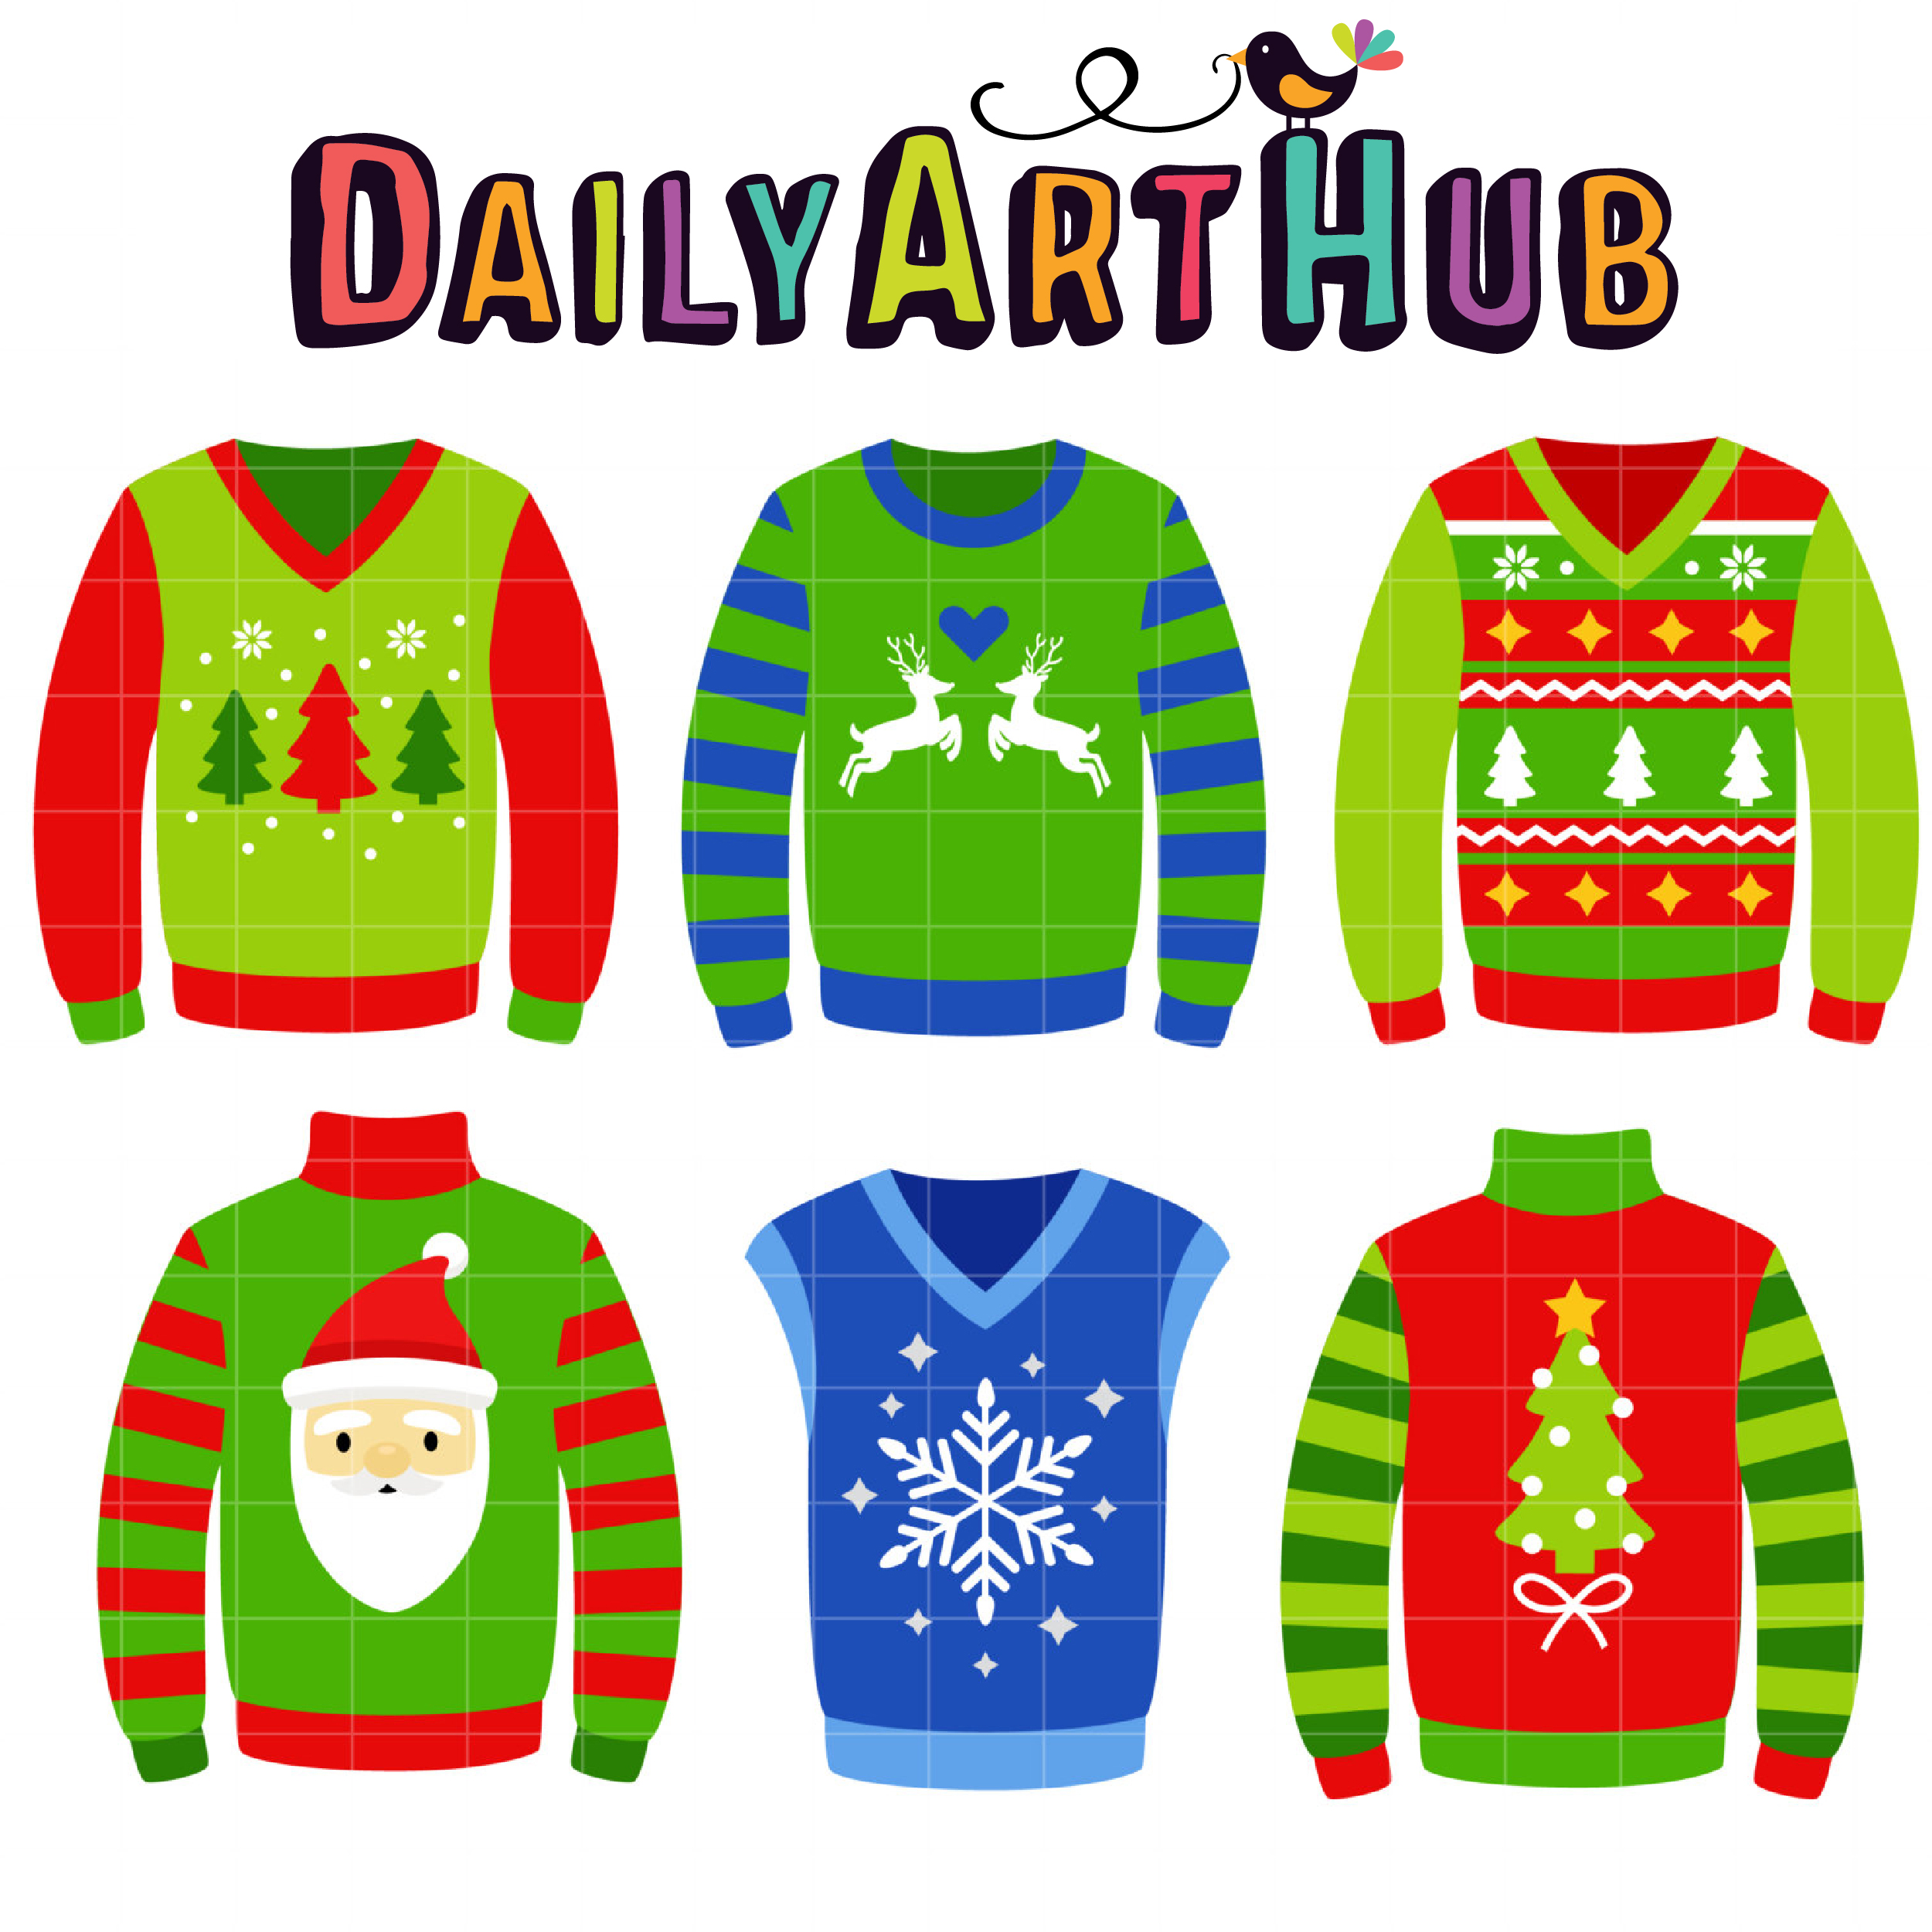 550d9d198181 Ugly Christmas Sweaters Clip Art Set – Daily Art Hub – Free Clip Art ...